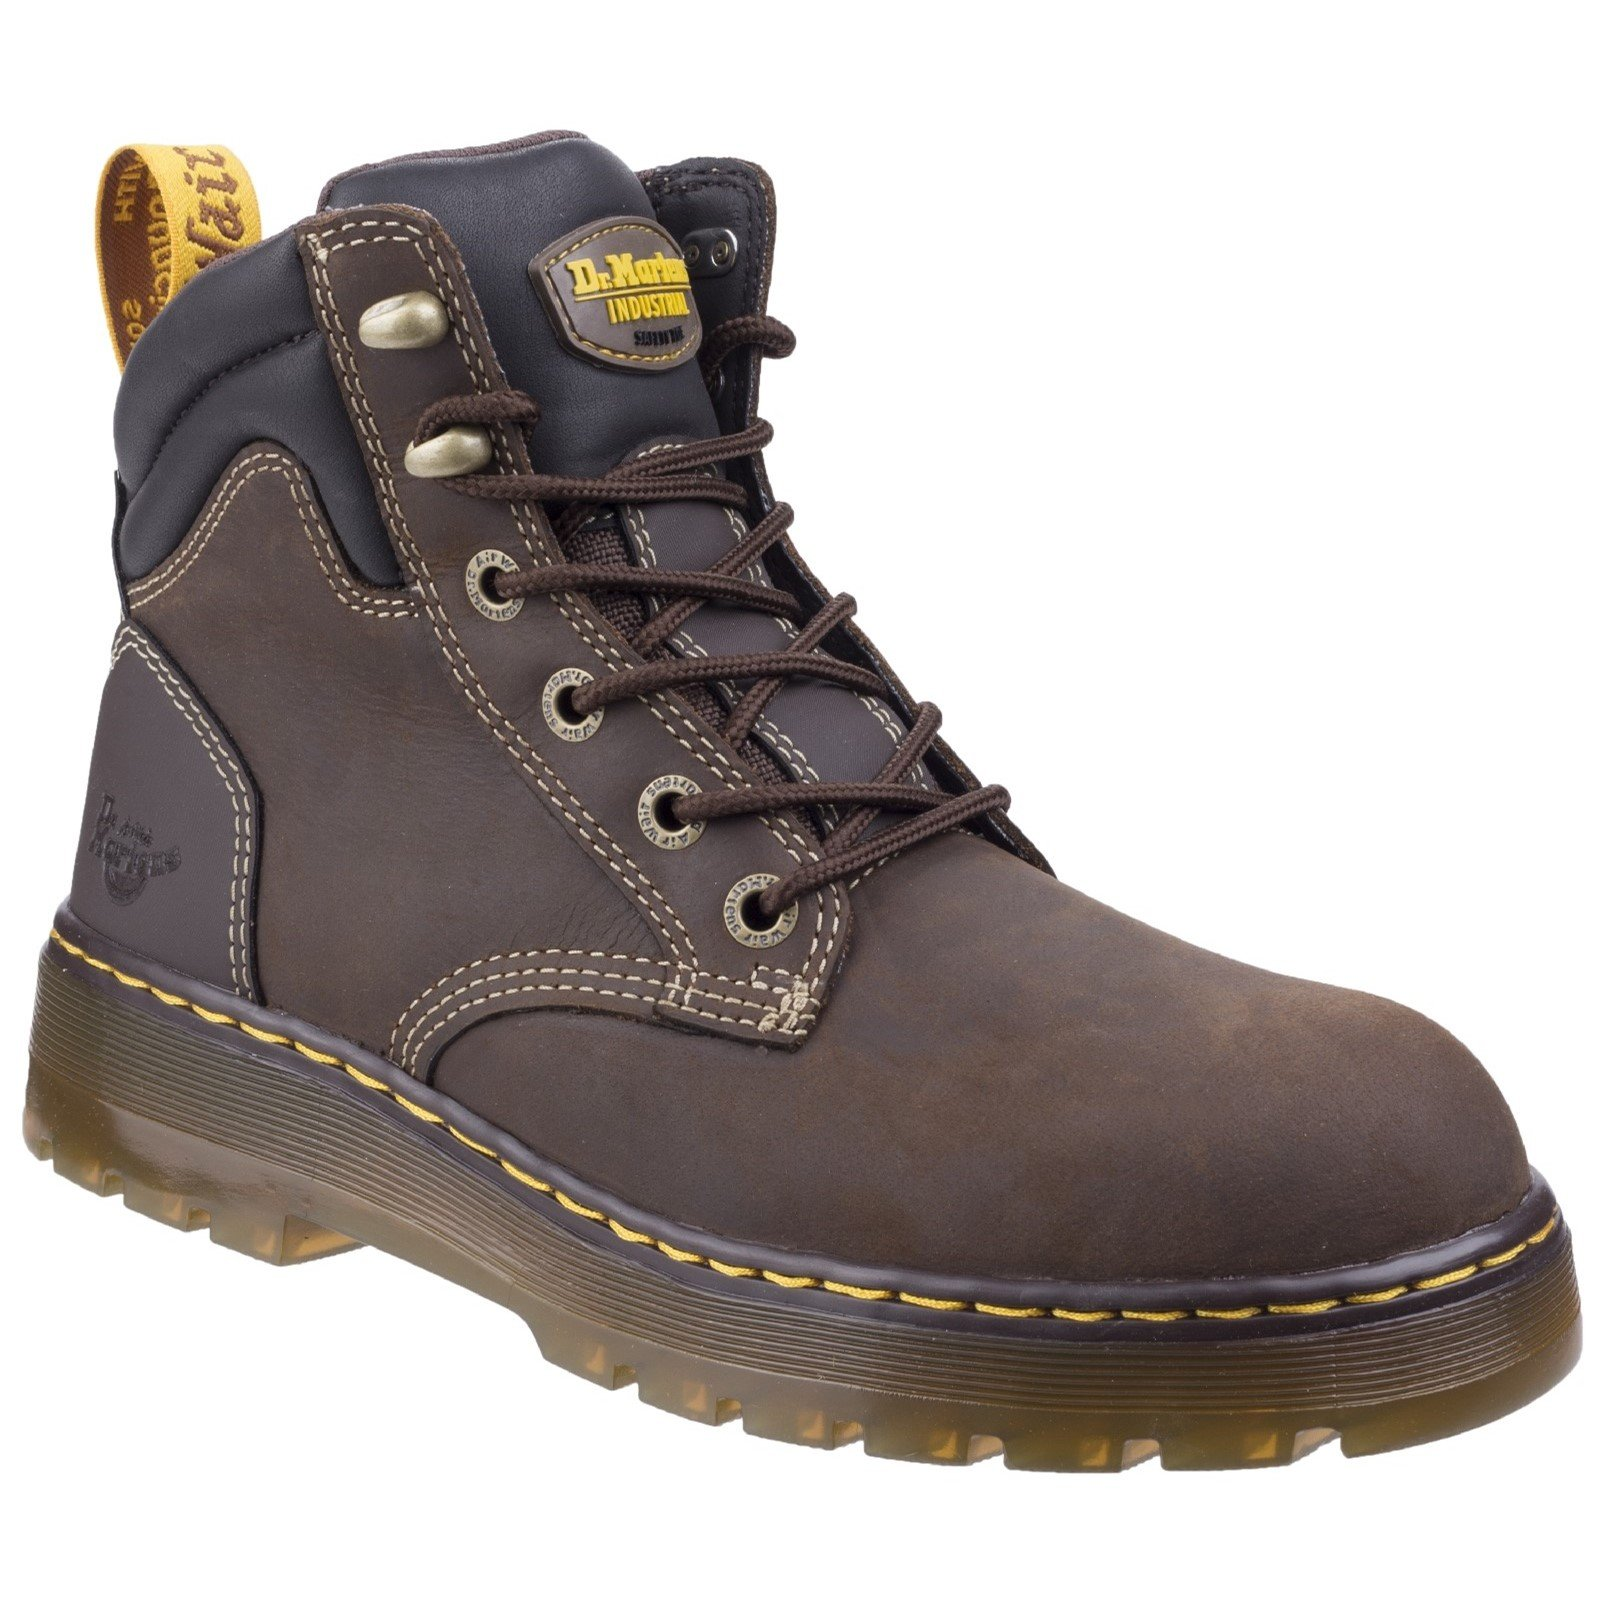 Dr Martens Unisex Brace Hiking Style Safety Boot Various Colours 27702-46606 - Dark Brown Republic 12